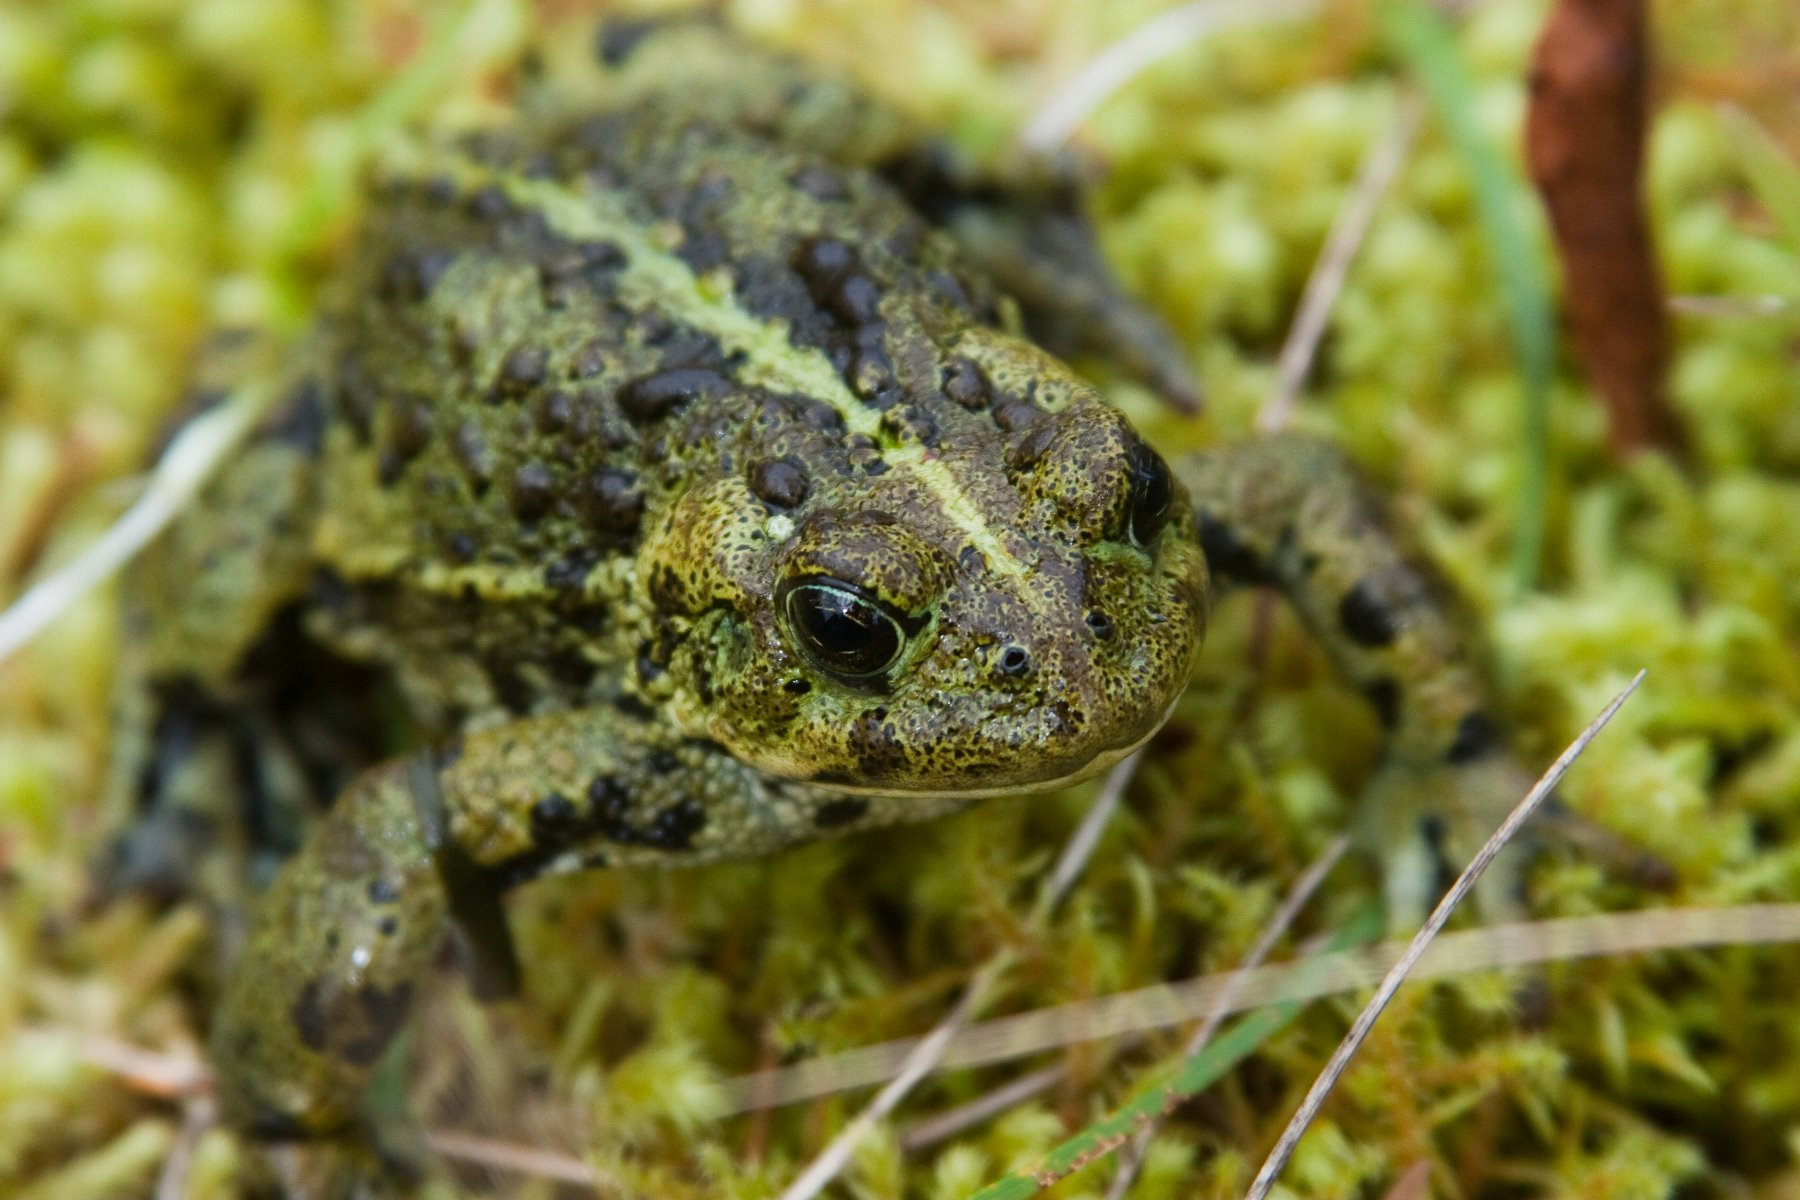 Toads are important.  Scientists refer to amphibians as 'indicator' species.  Amphibians, like this boreal toad, are extremely sensitive to small changes in their environment.